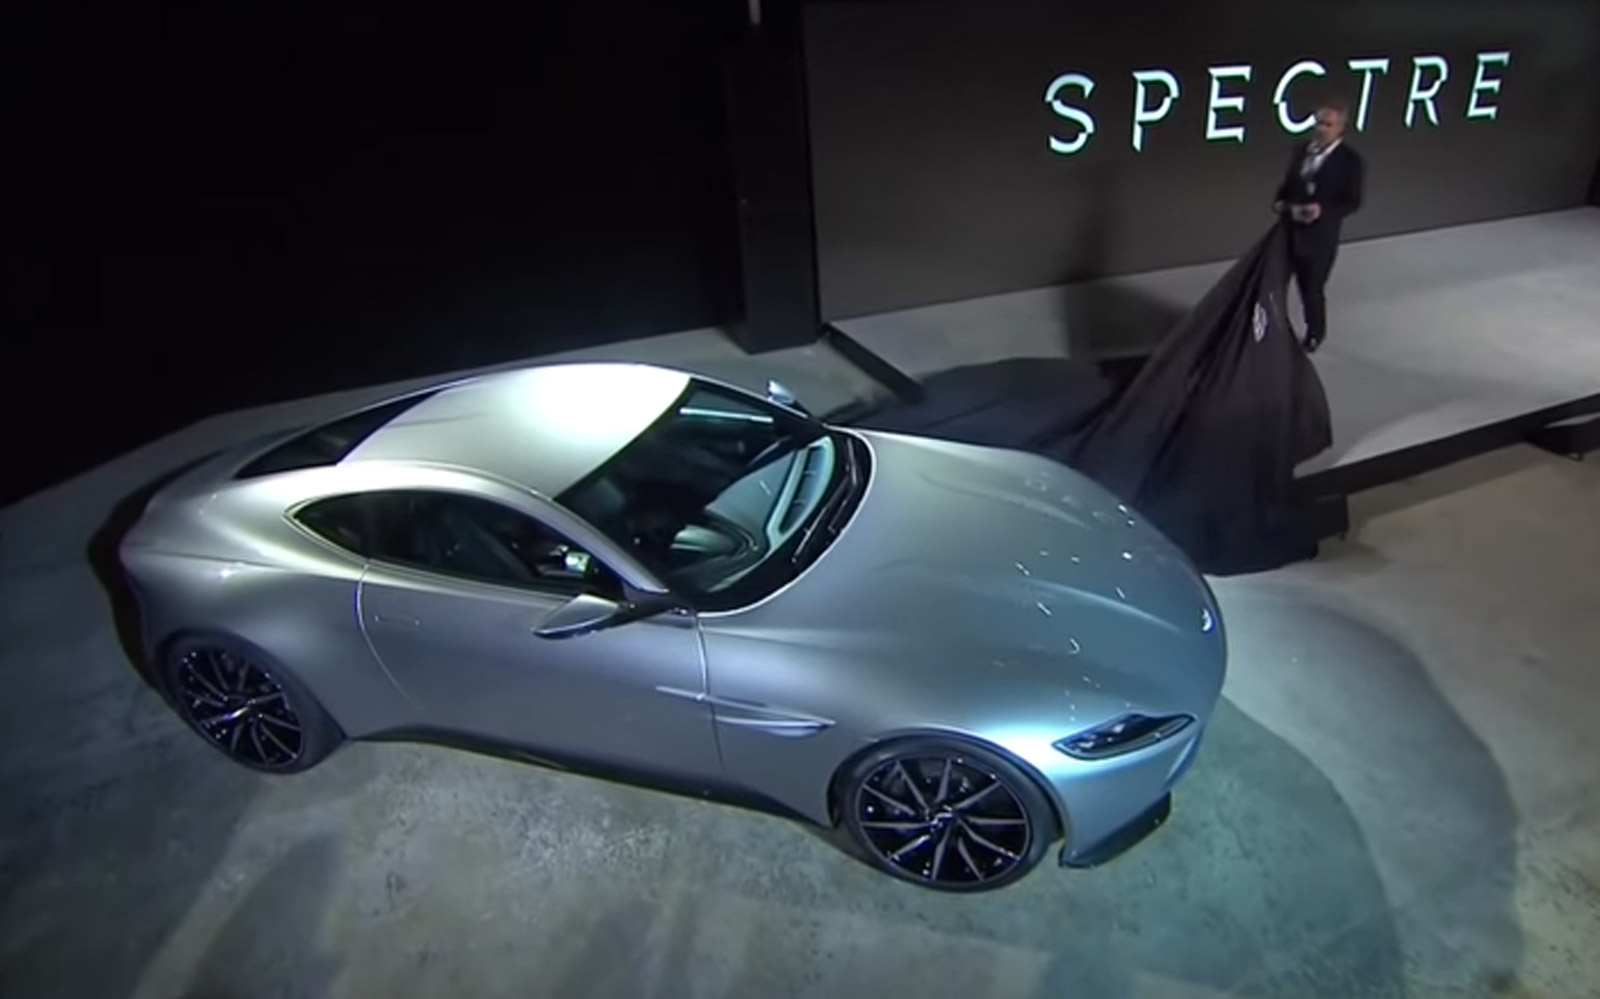 Amazing Watch The Reveal Of The Aston Martin DB10 At The James